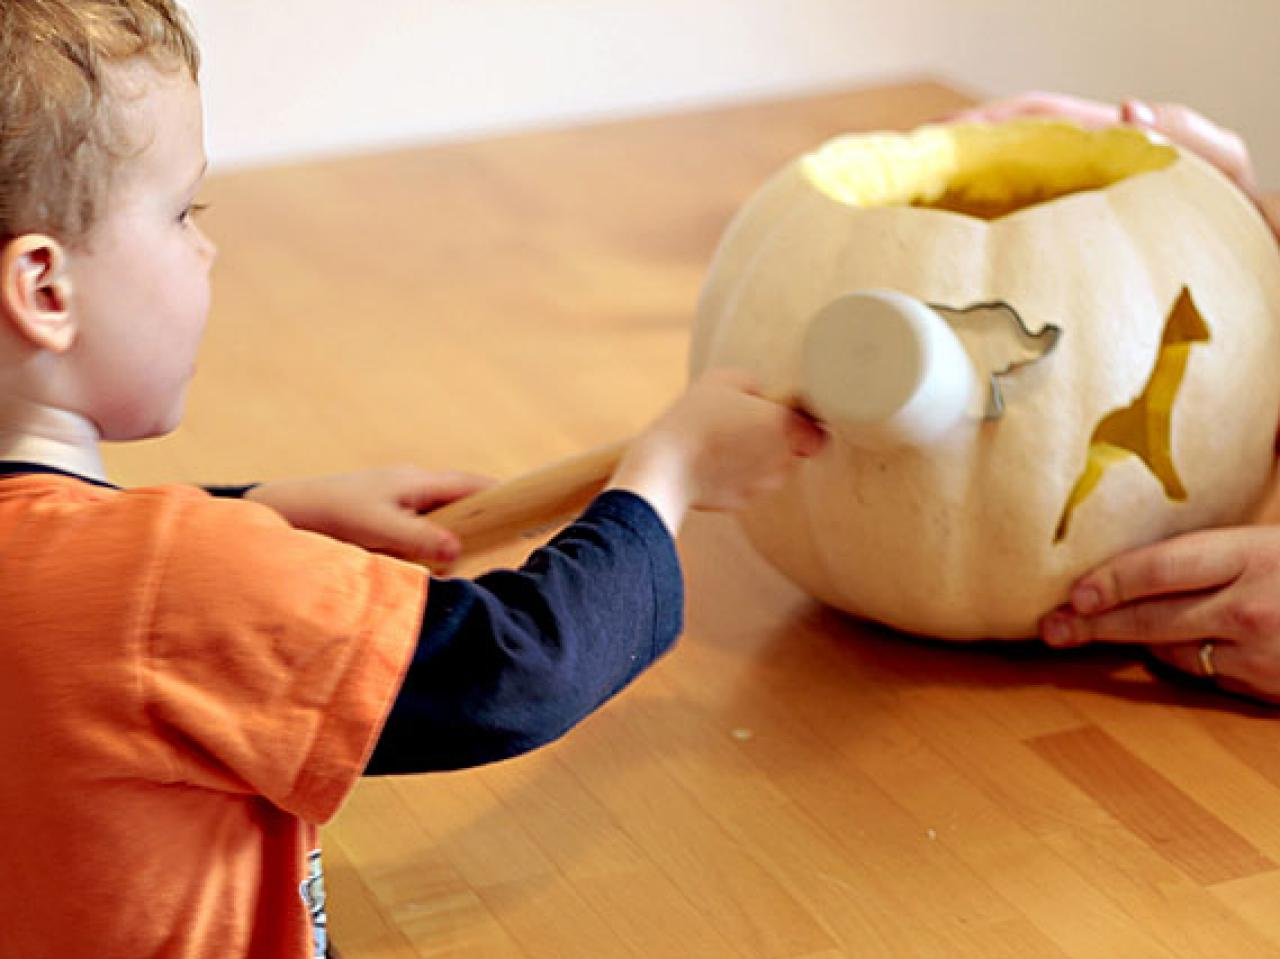 Cookie-Cutter Pumpkin Carving With Kids | HGTV